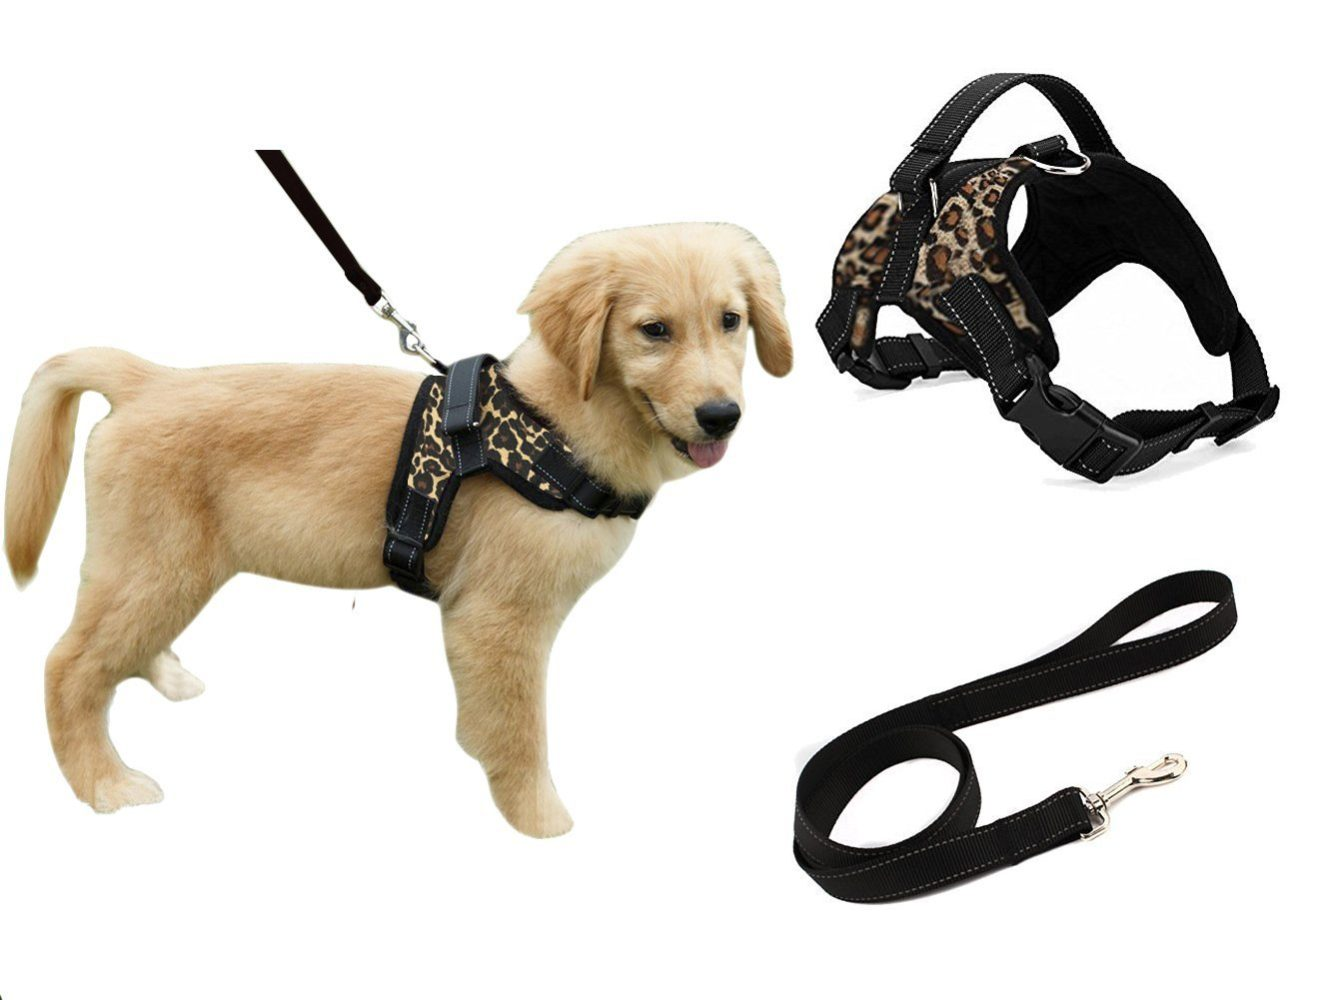 heavy duty adjustable pet puppy dog safety harness with leash. Black Bedroom Furniture Sets. Home Design Ideas